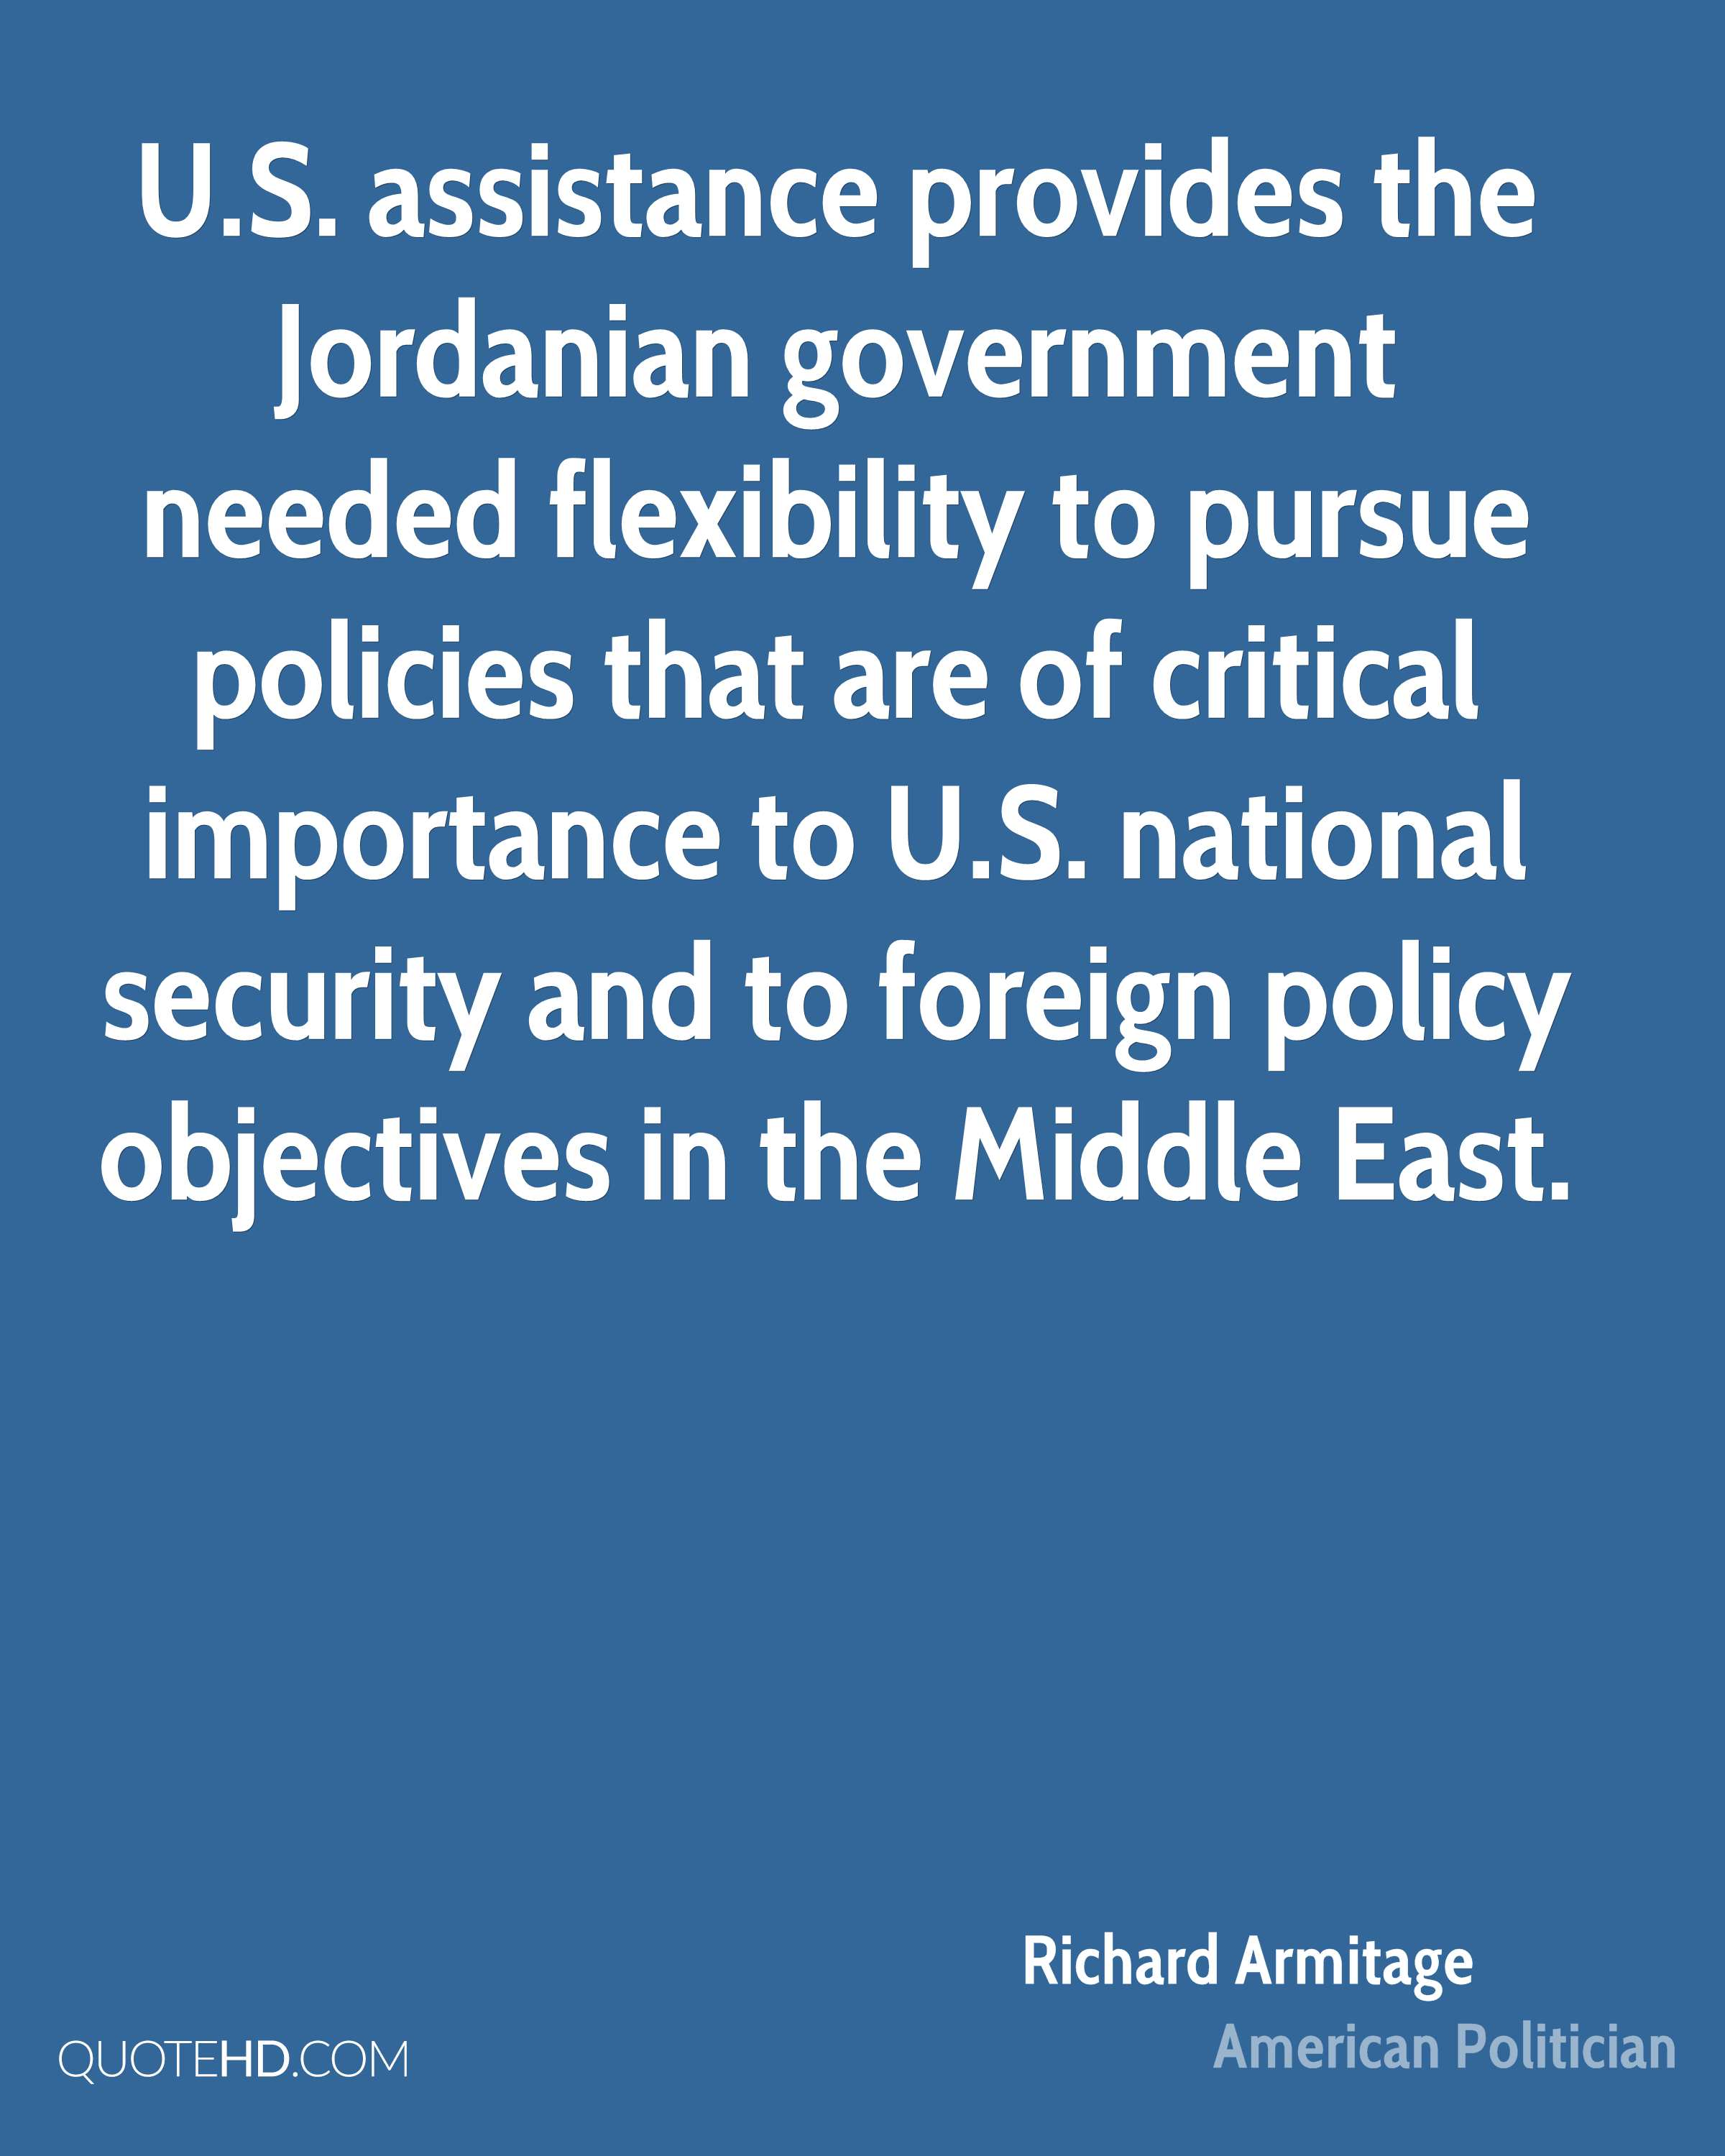 U.S. assistance provides the Jordanian government needed flexibility to pursue policies that are of critical importance to U.S. national security and to foreign policy objectives in the Middle East.